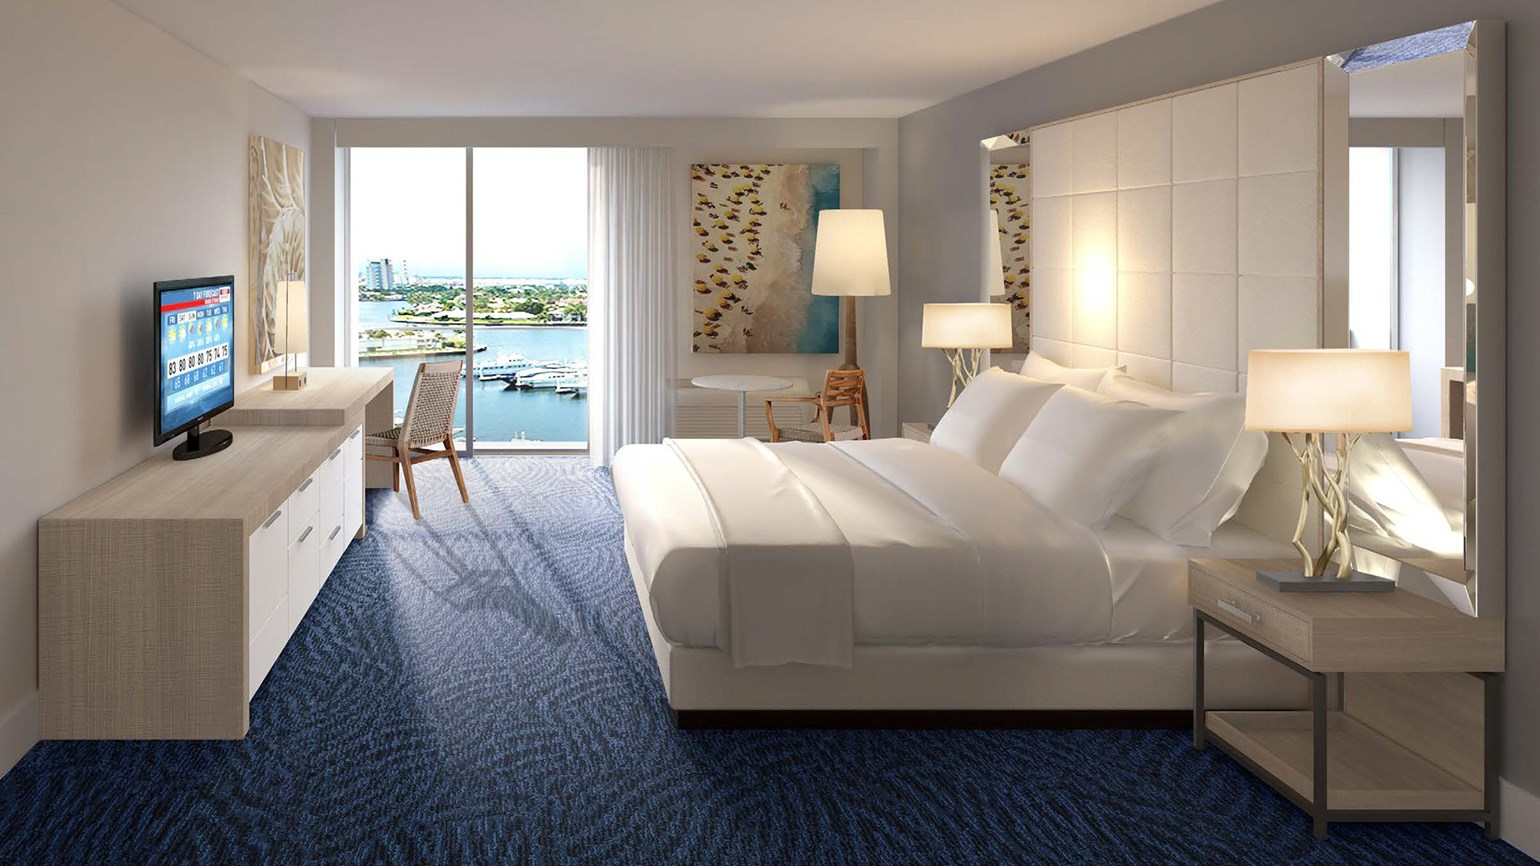 Bahia Mar Fort Lauderdale gets $7M refresh